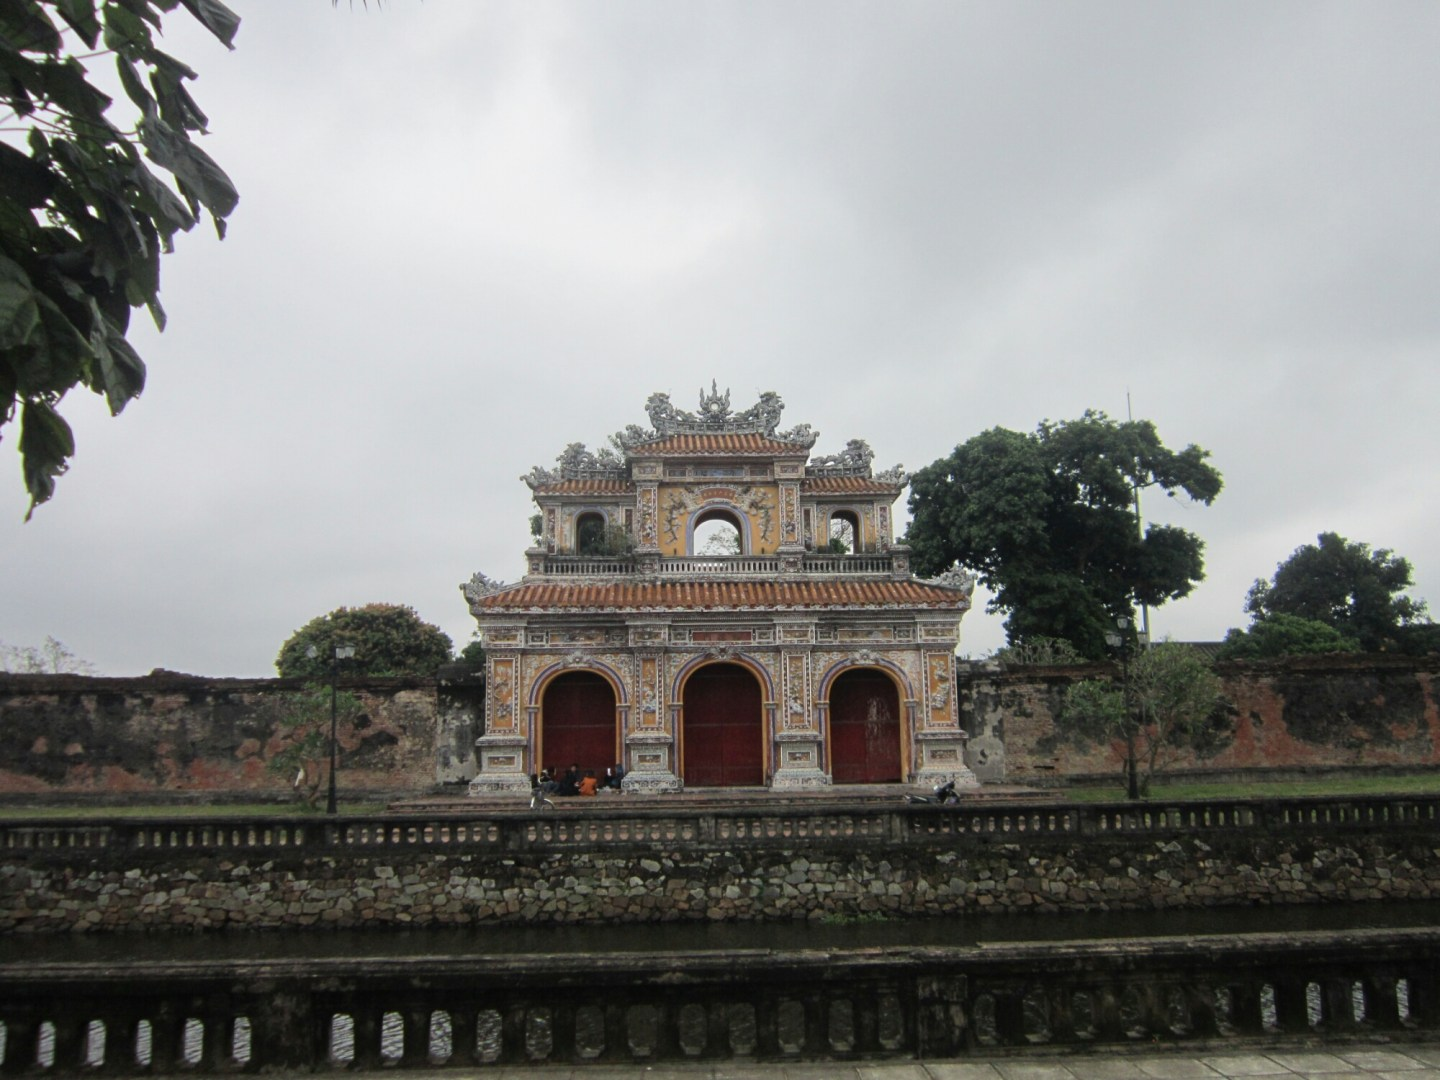 From Laos into Vietnam – border crossing and Hue